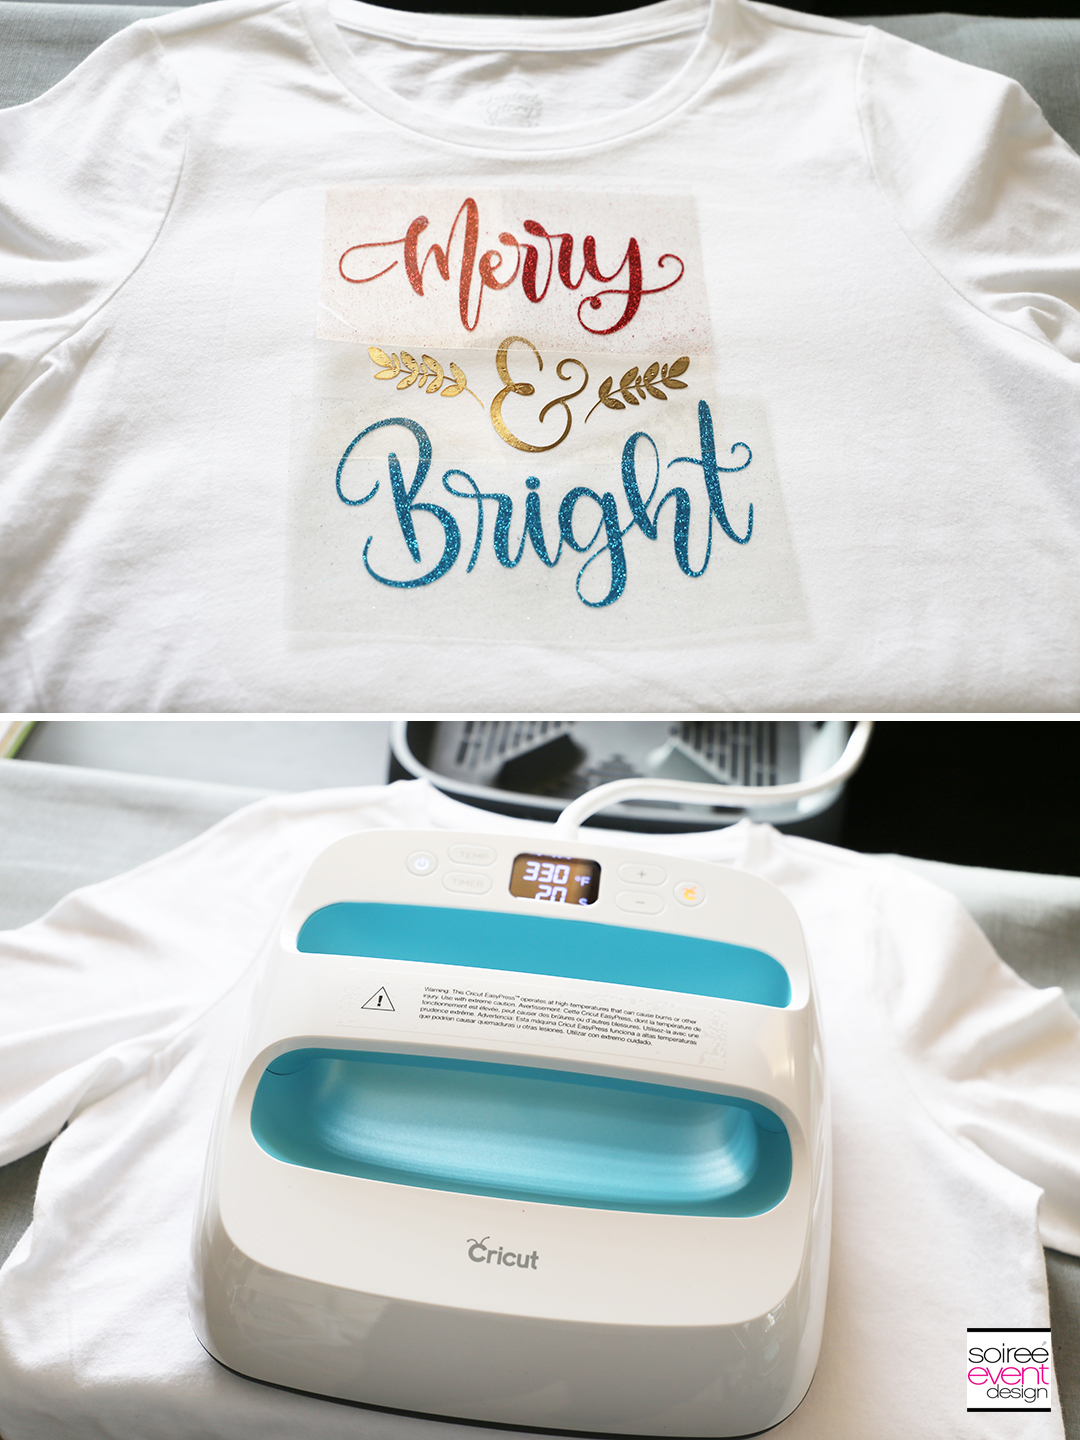 Cricut Merry and Bright T-Shirts - Step 5A